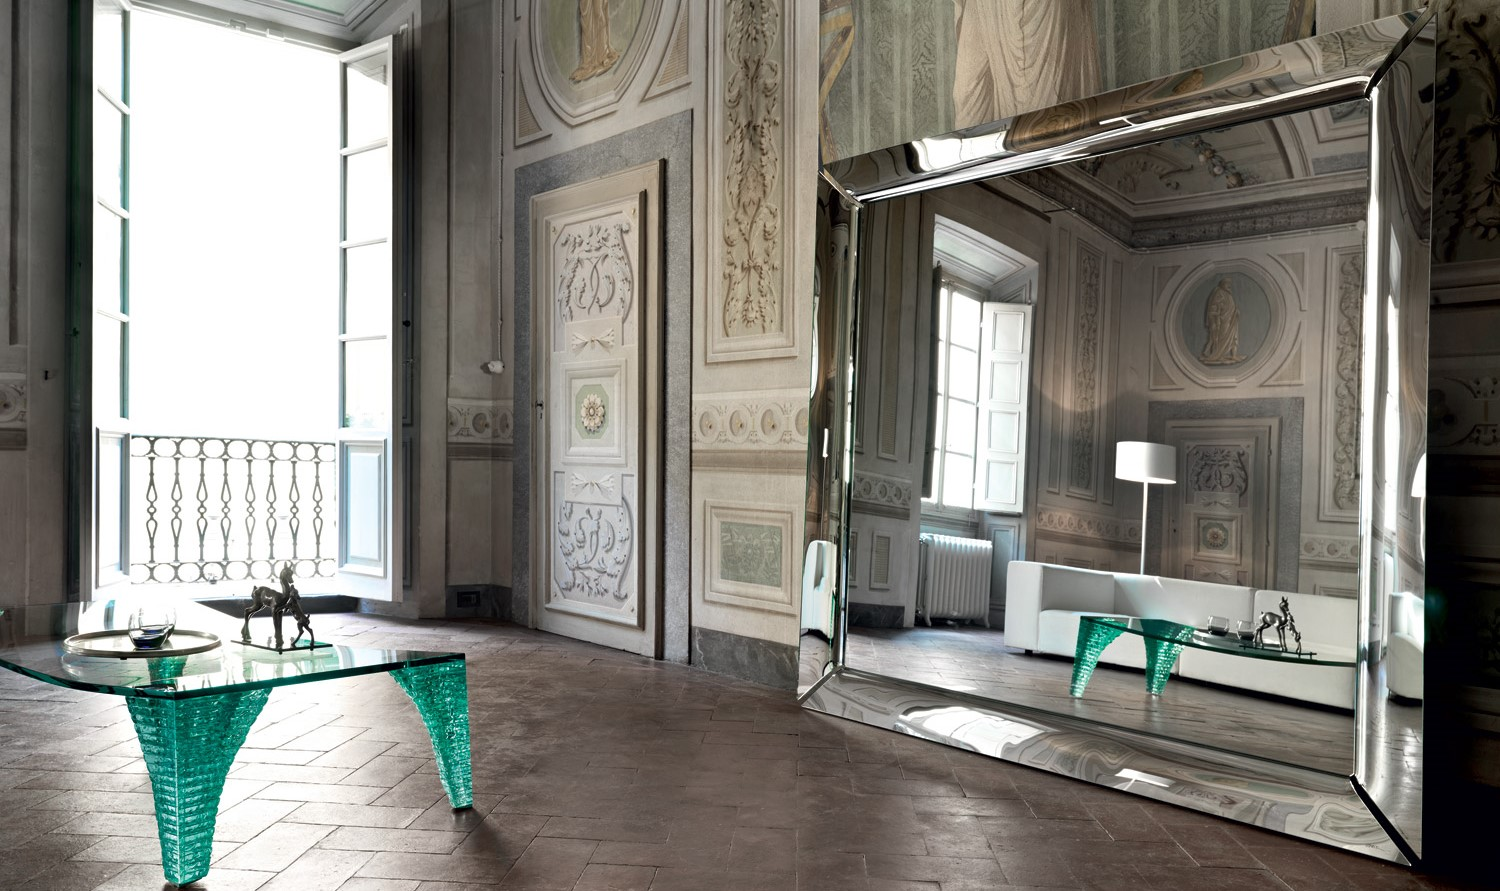 Unique large floor mirrors